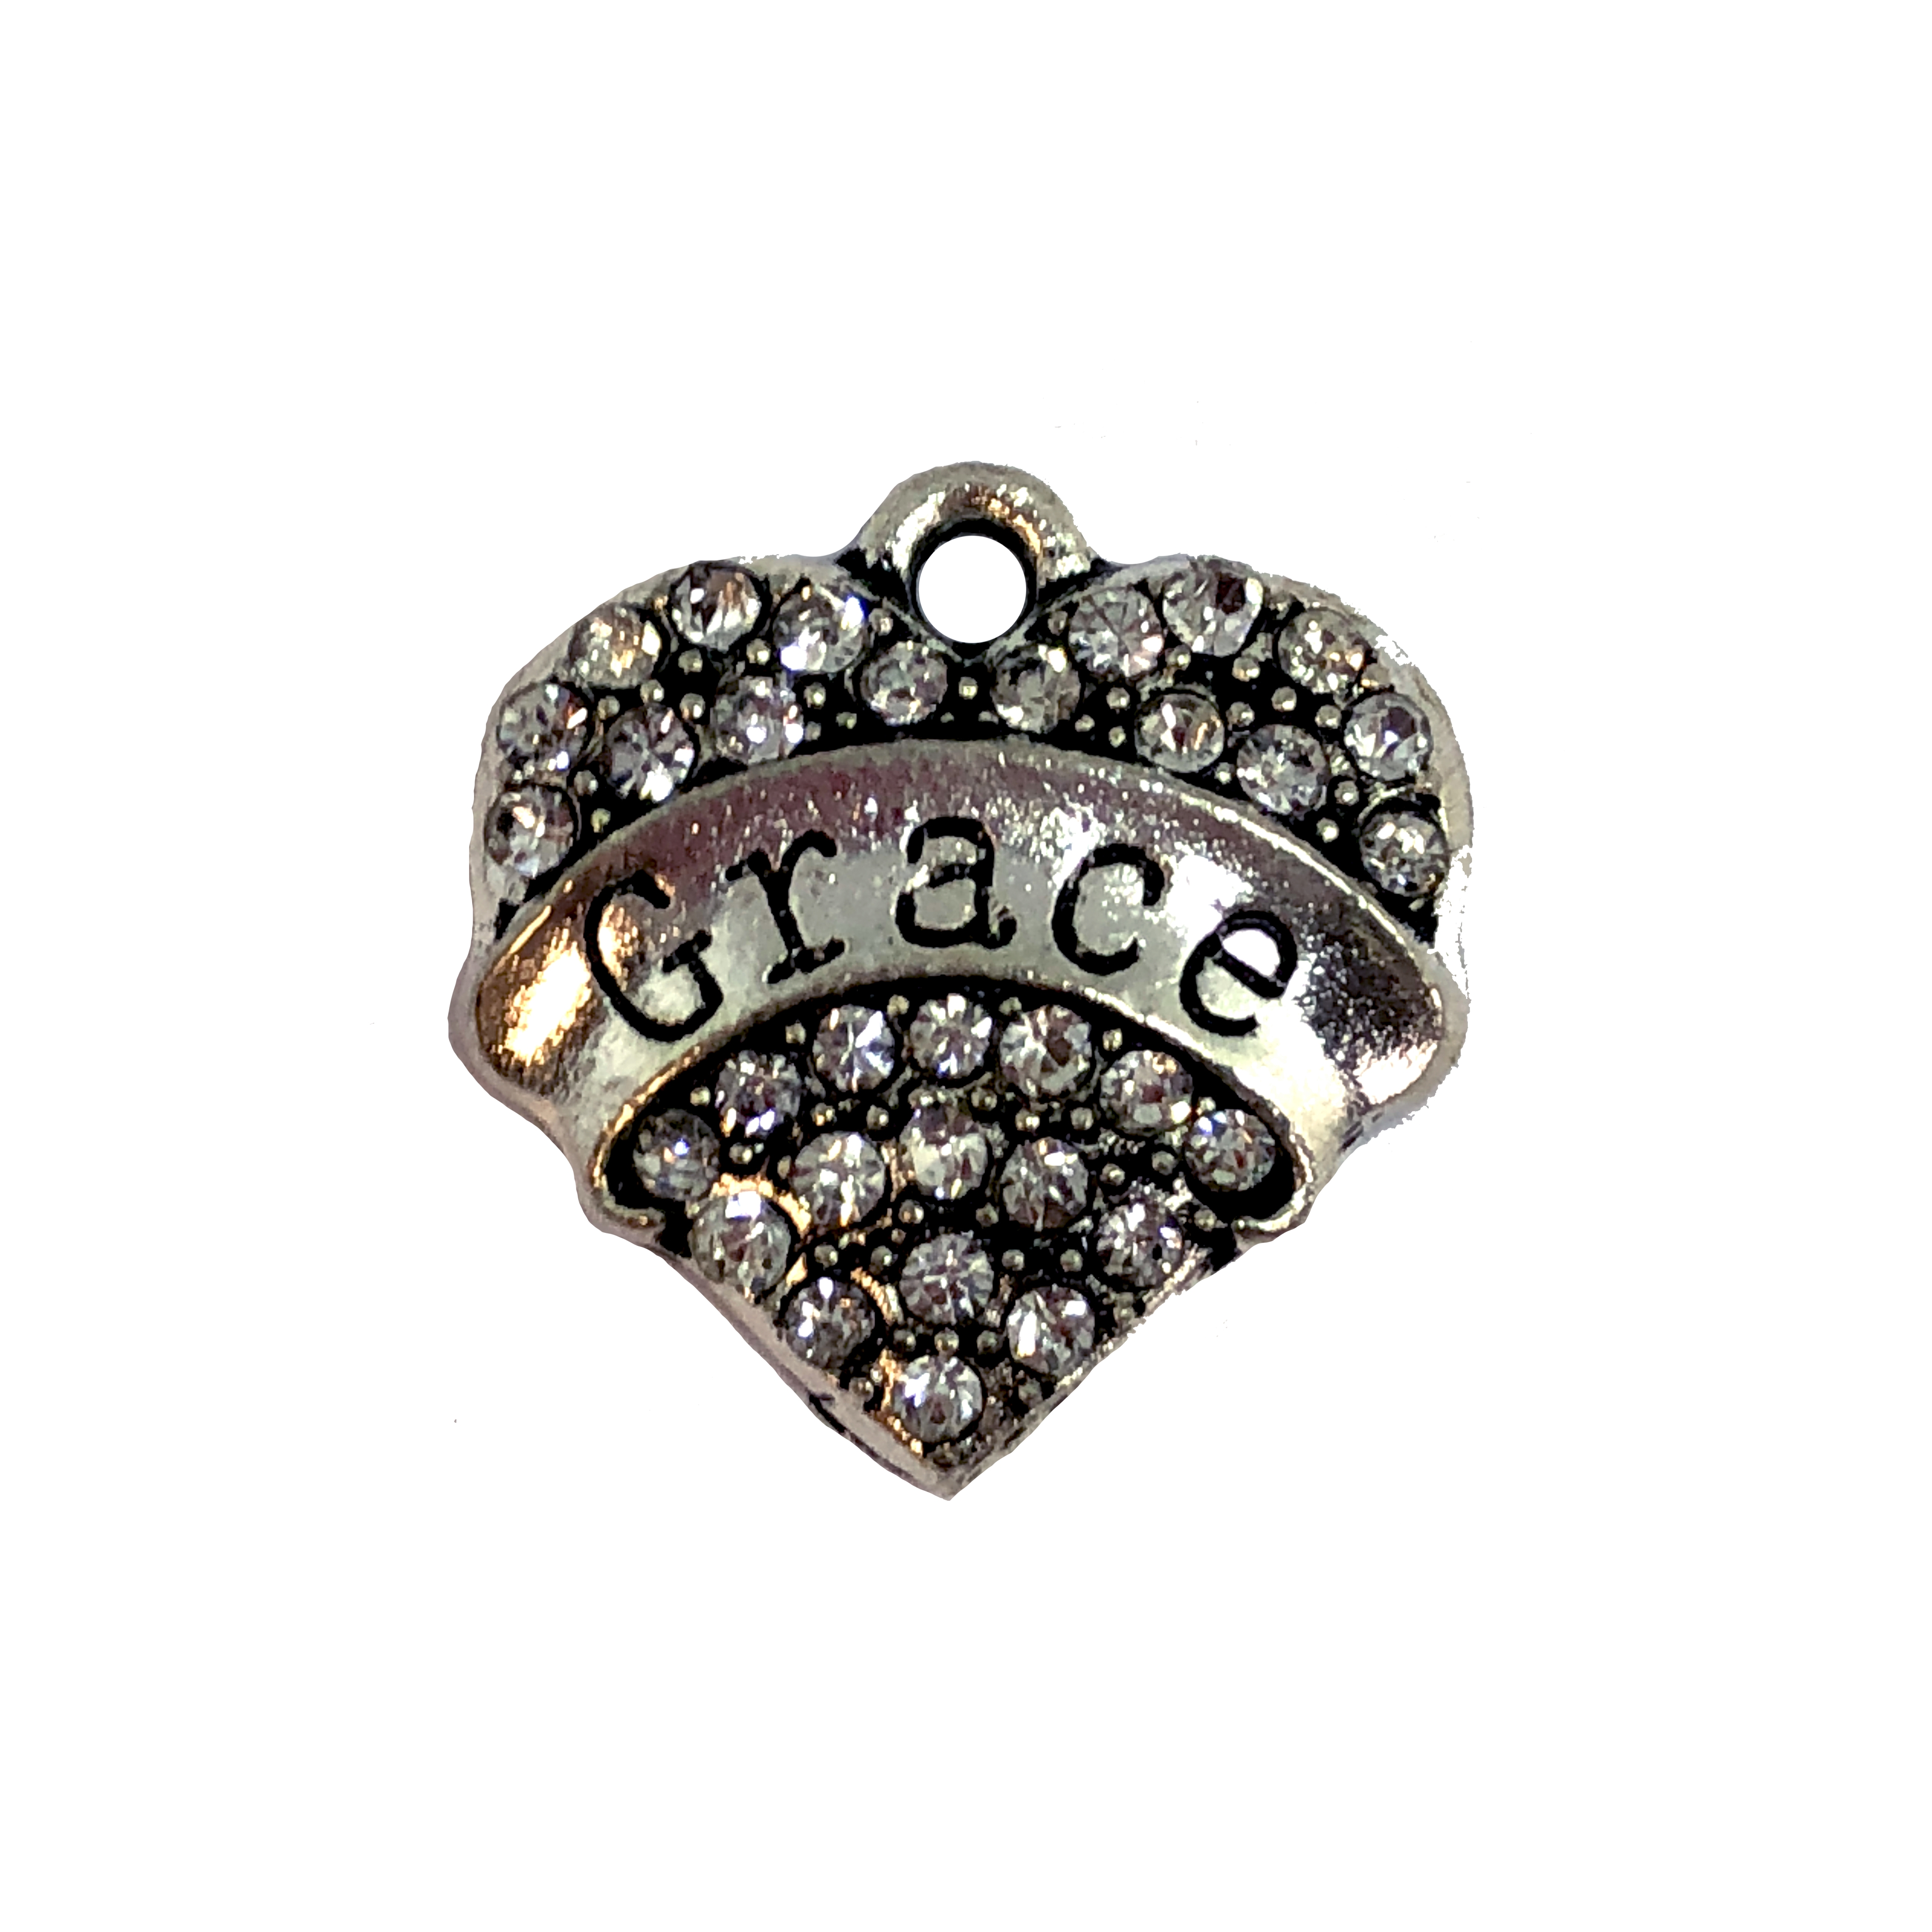 heart charm, grace charm, 07865, charm, charms, hearts, family, sister, B'sue Boutiques, jewelry supplies, embellishments, silvertone, rhinestones